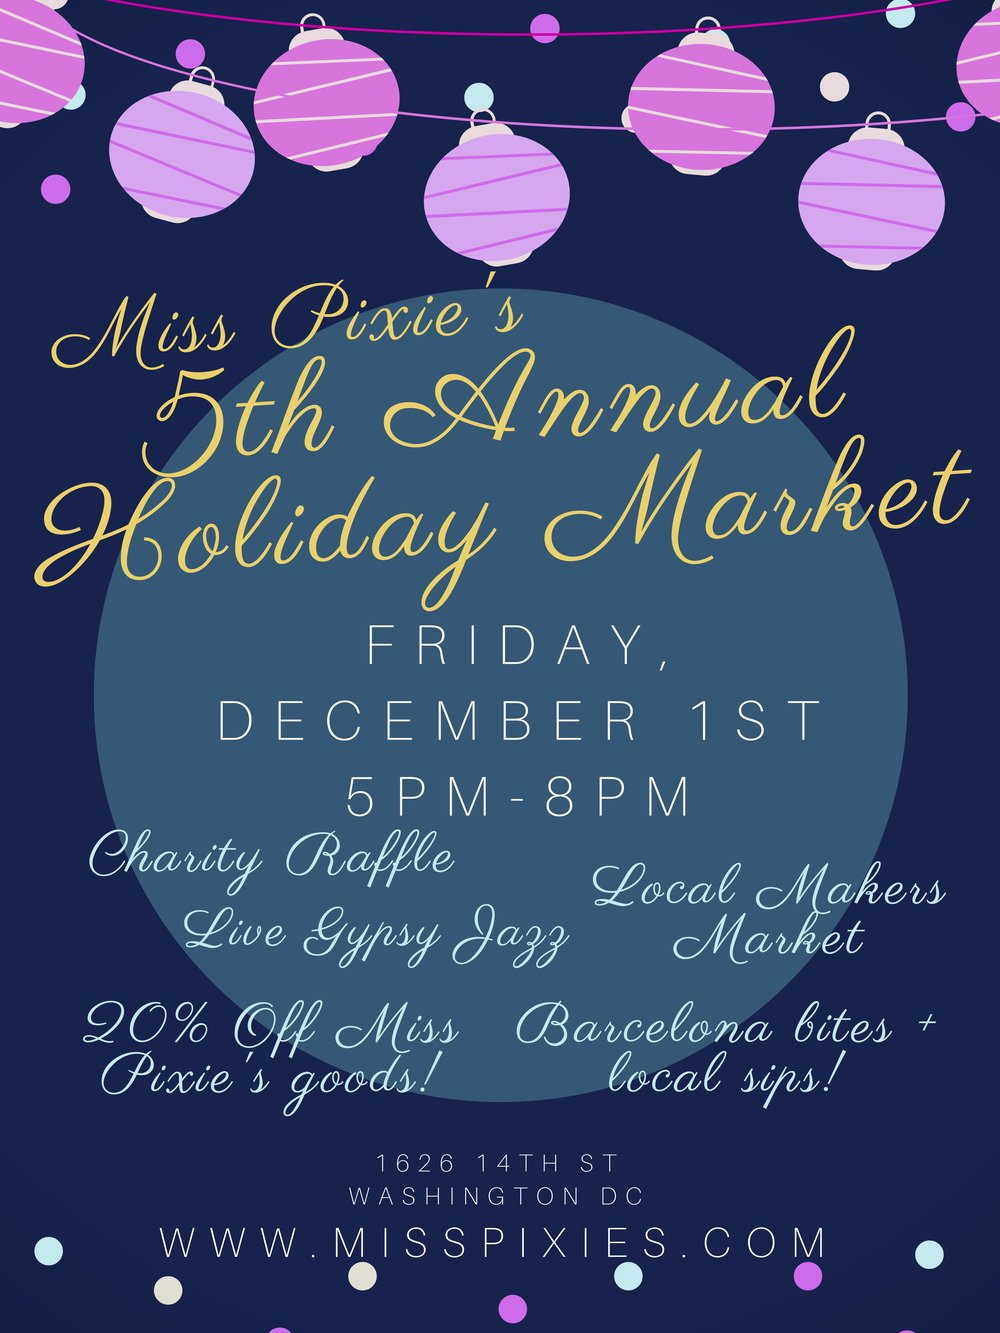 Miss Pixie's 5th Annual Holiday Market.jpg